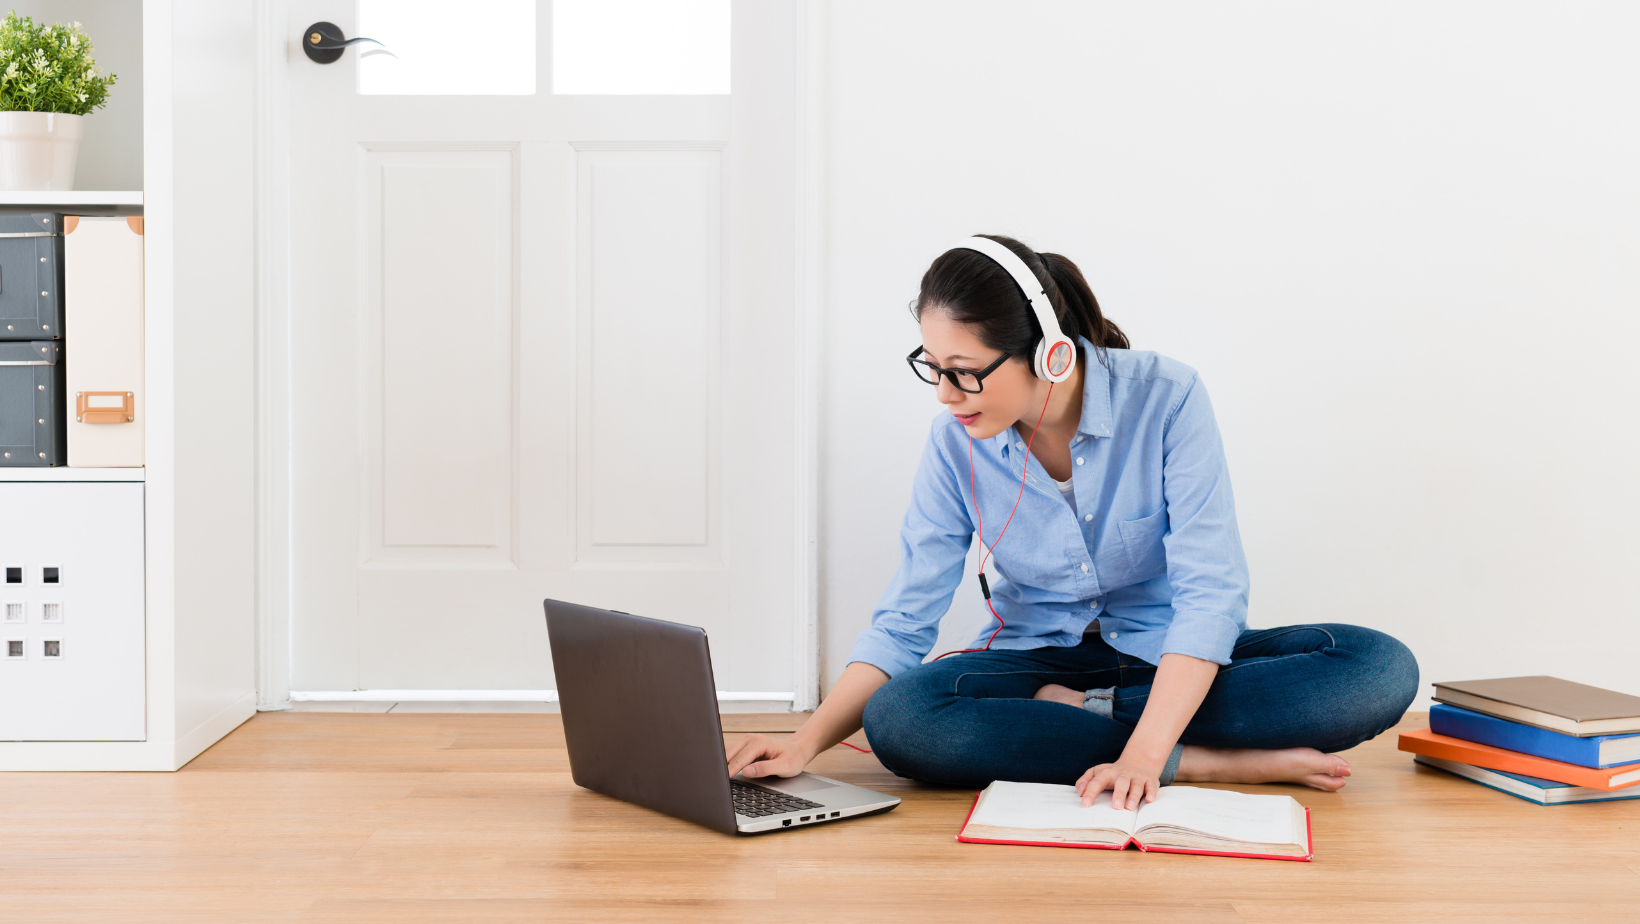 woman on the floor looking at a laptop